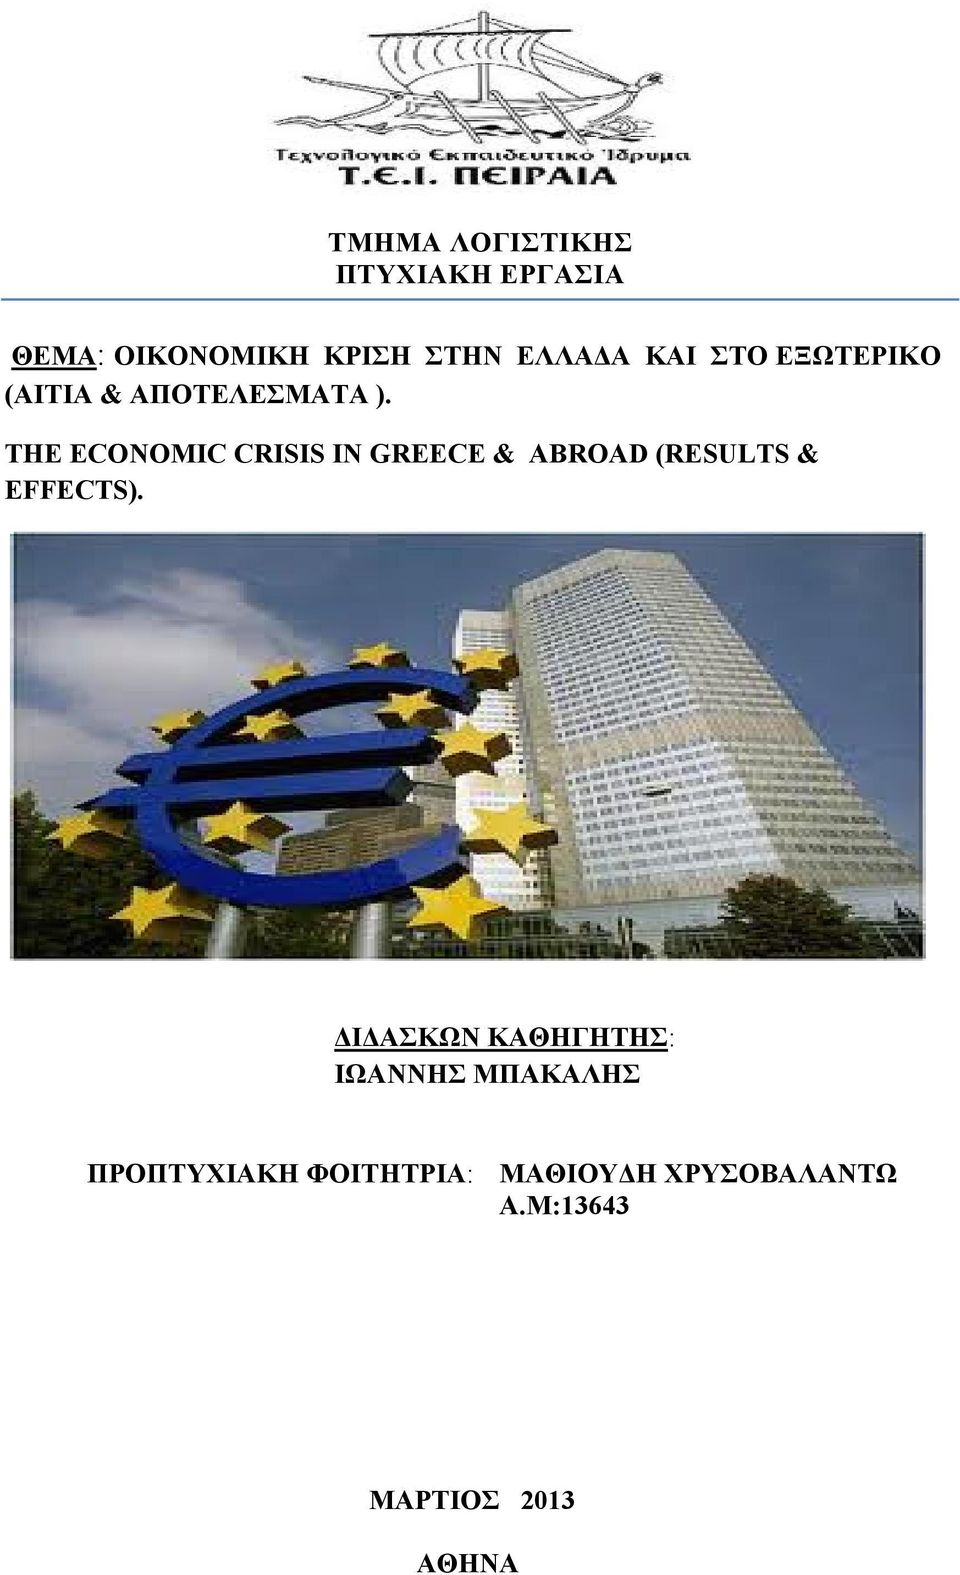 THE ECONOMIC CRISIS IN GREECE & ABROAD (RESULTS & EFFECTS).